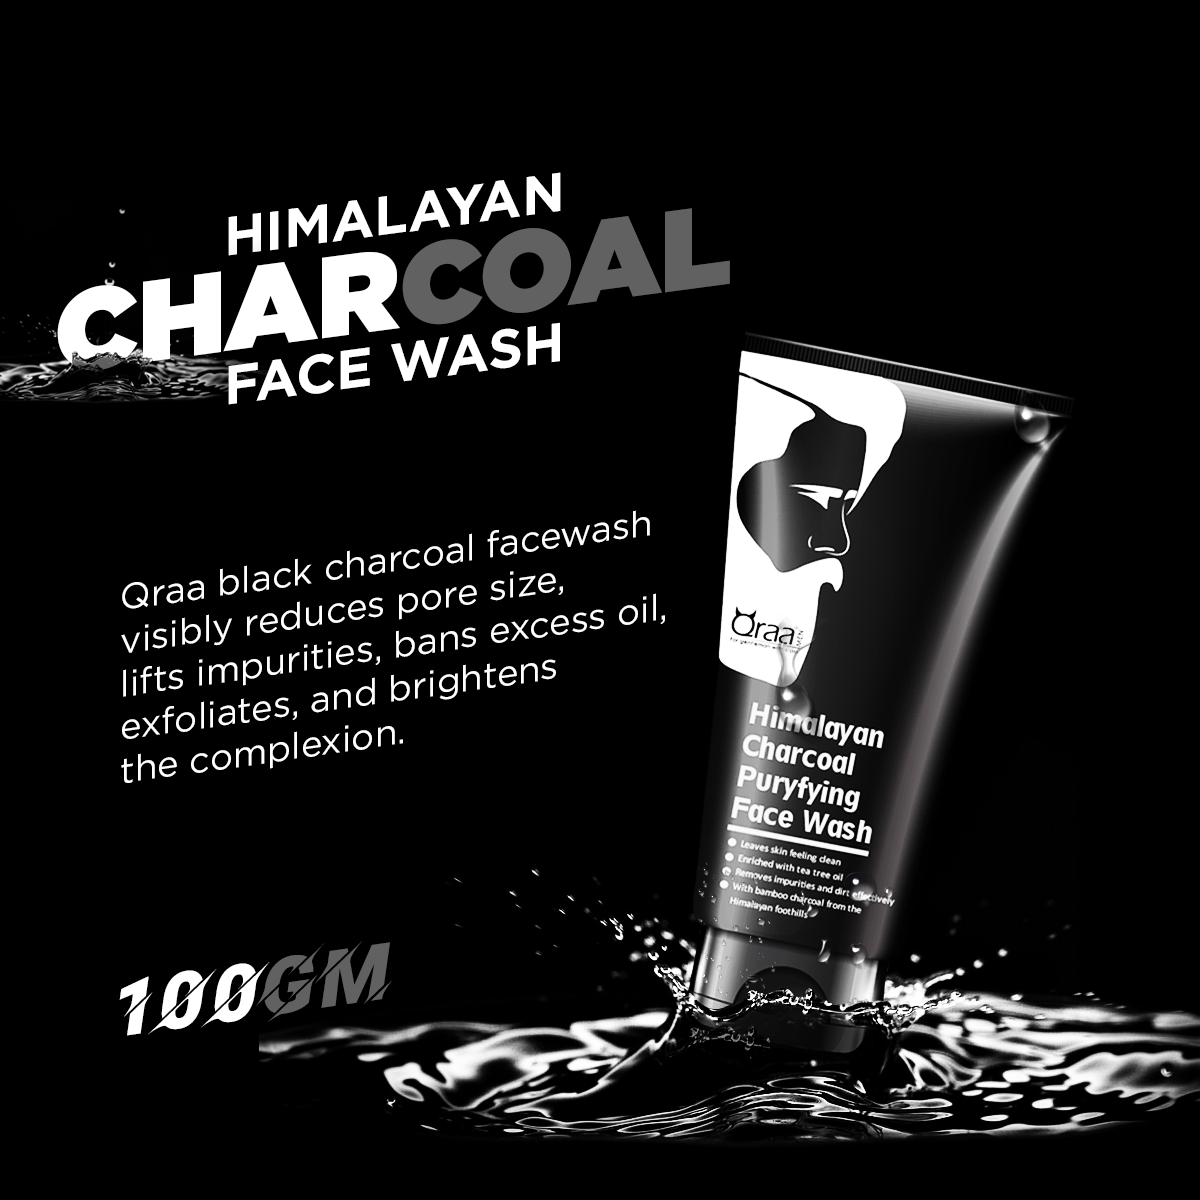 Himalayan charcoal face wash for men